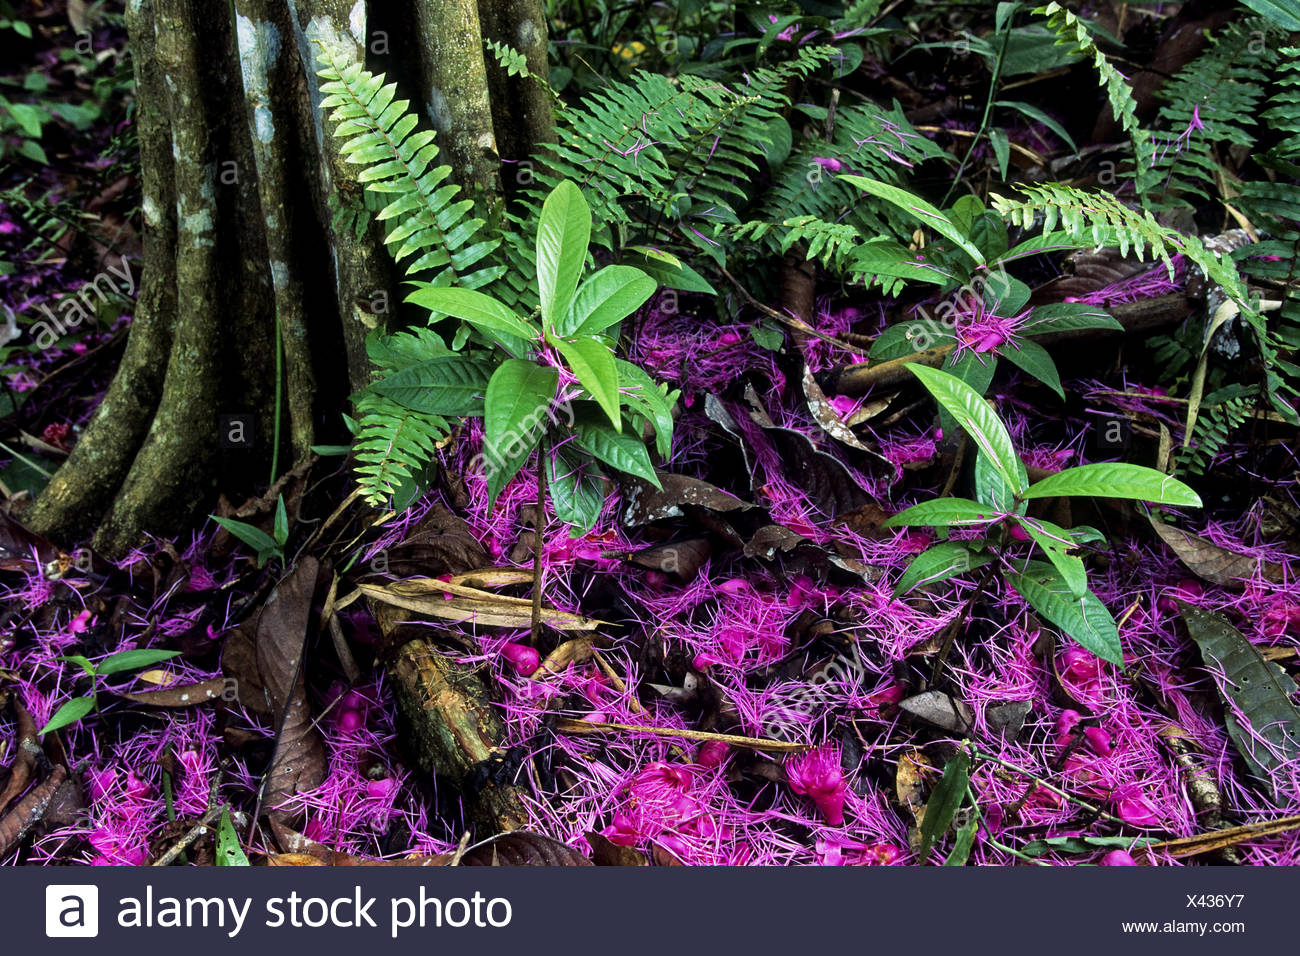 flowers on rainforest floor, tropical rainforest, Indonesia, Western New Guinea, Irian Jaya - Stock Image